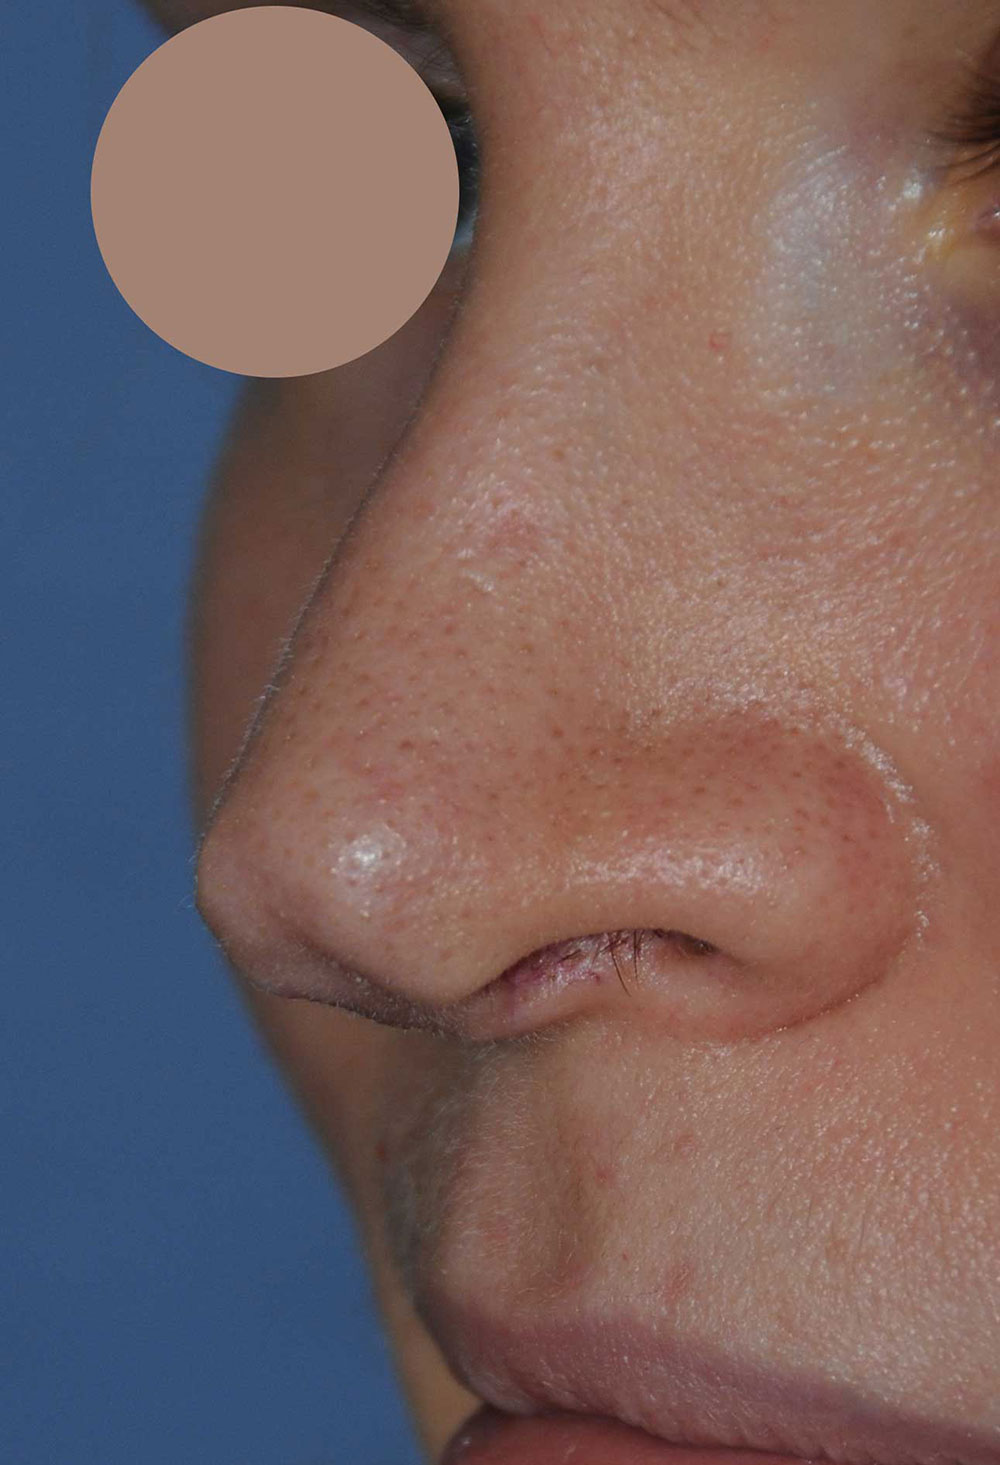 Revision Rhinoplasty for Droopy Tip, Tip Irregularities, Nasal Bridge Bump, Narrowed Right more than Left Nasal Airway, Collapsing Nostrils, and Crooked Nose Left Oblique View